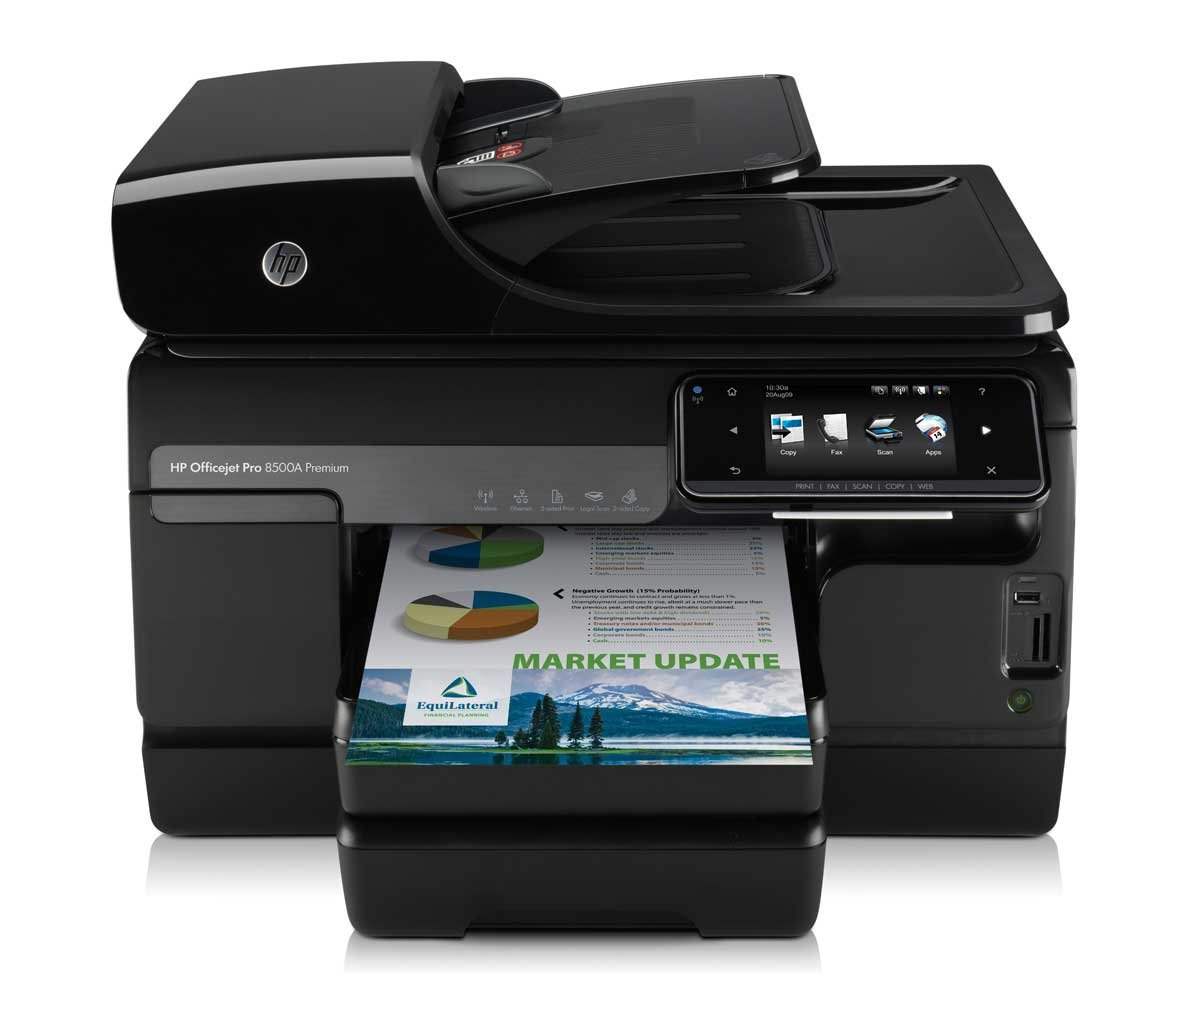 Amazon.com: HP Officejet Pro 8500A Premium Wireless e-All-in-One  (CM758A#B1H): Office Products